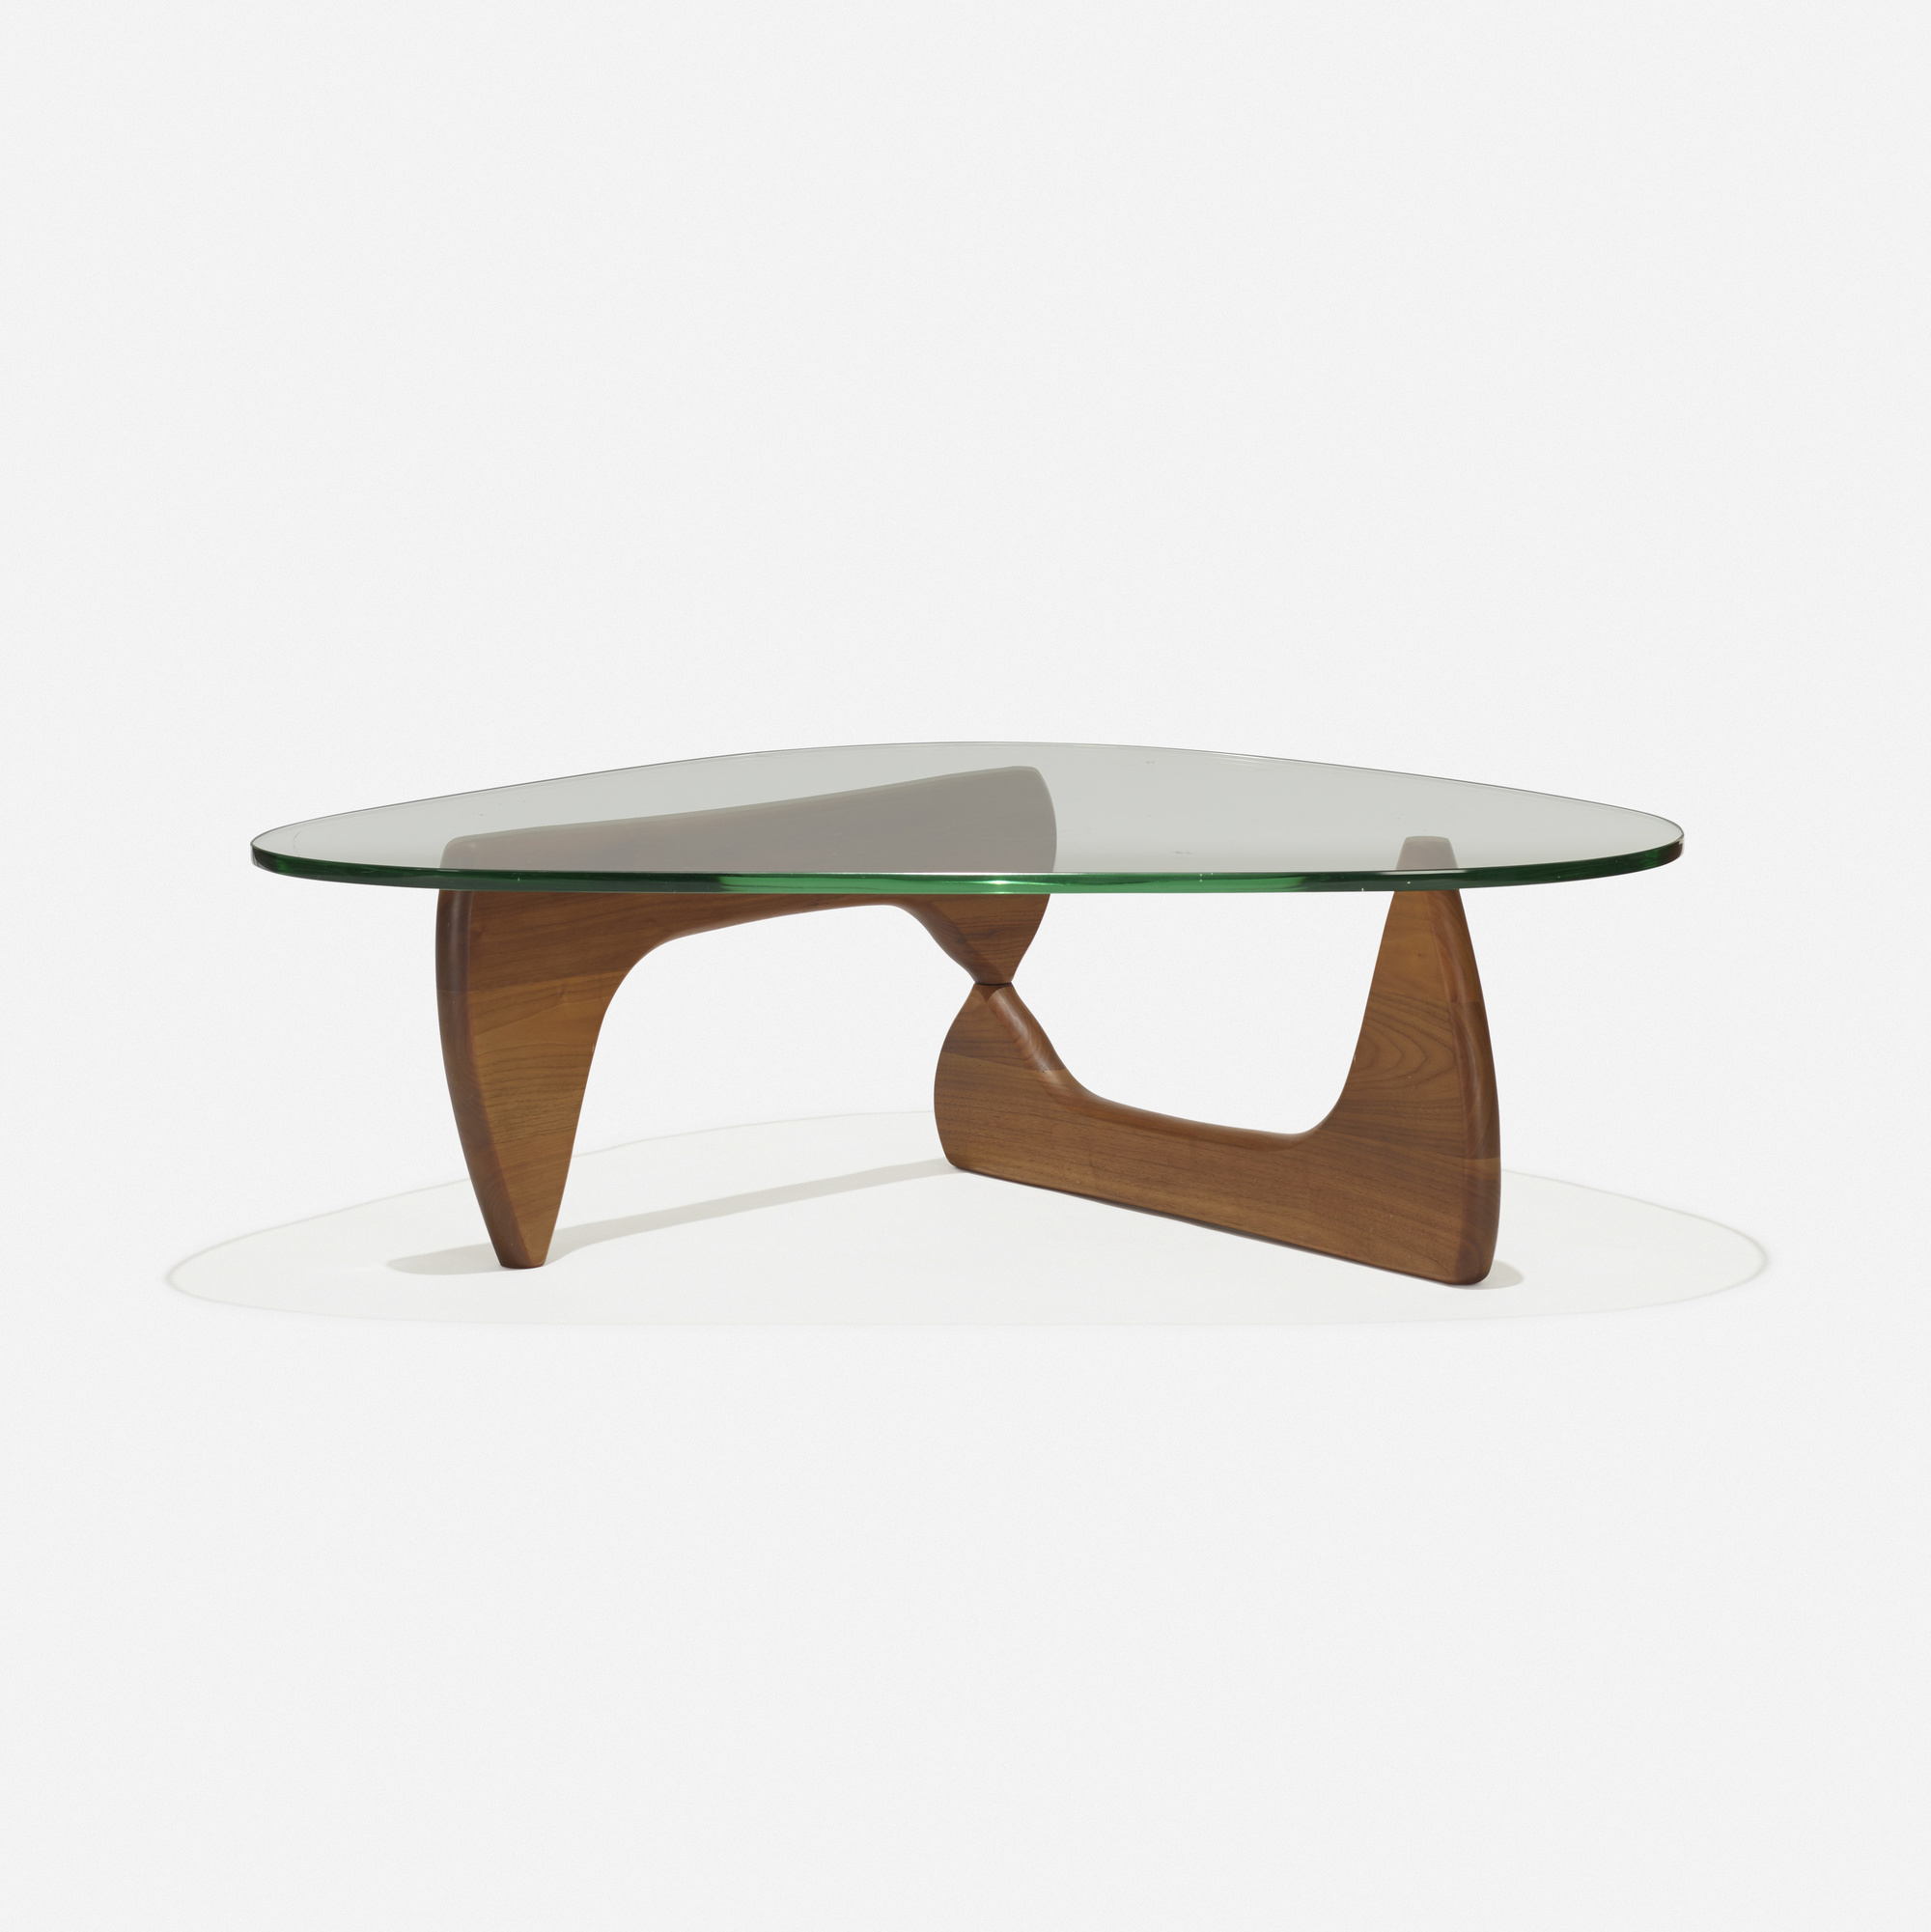 334 Isamu Noguchi coffee table model IN 50 American Design